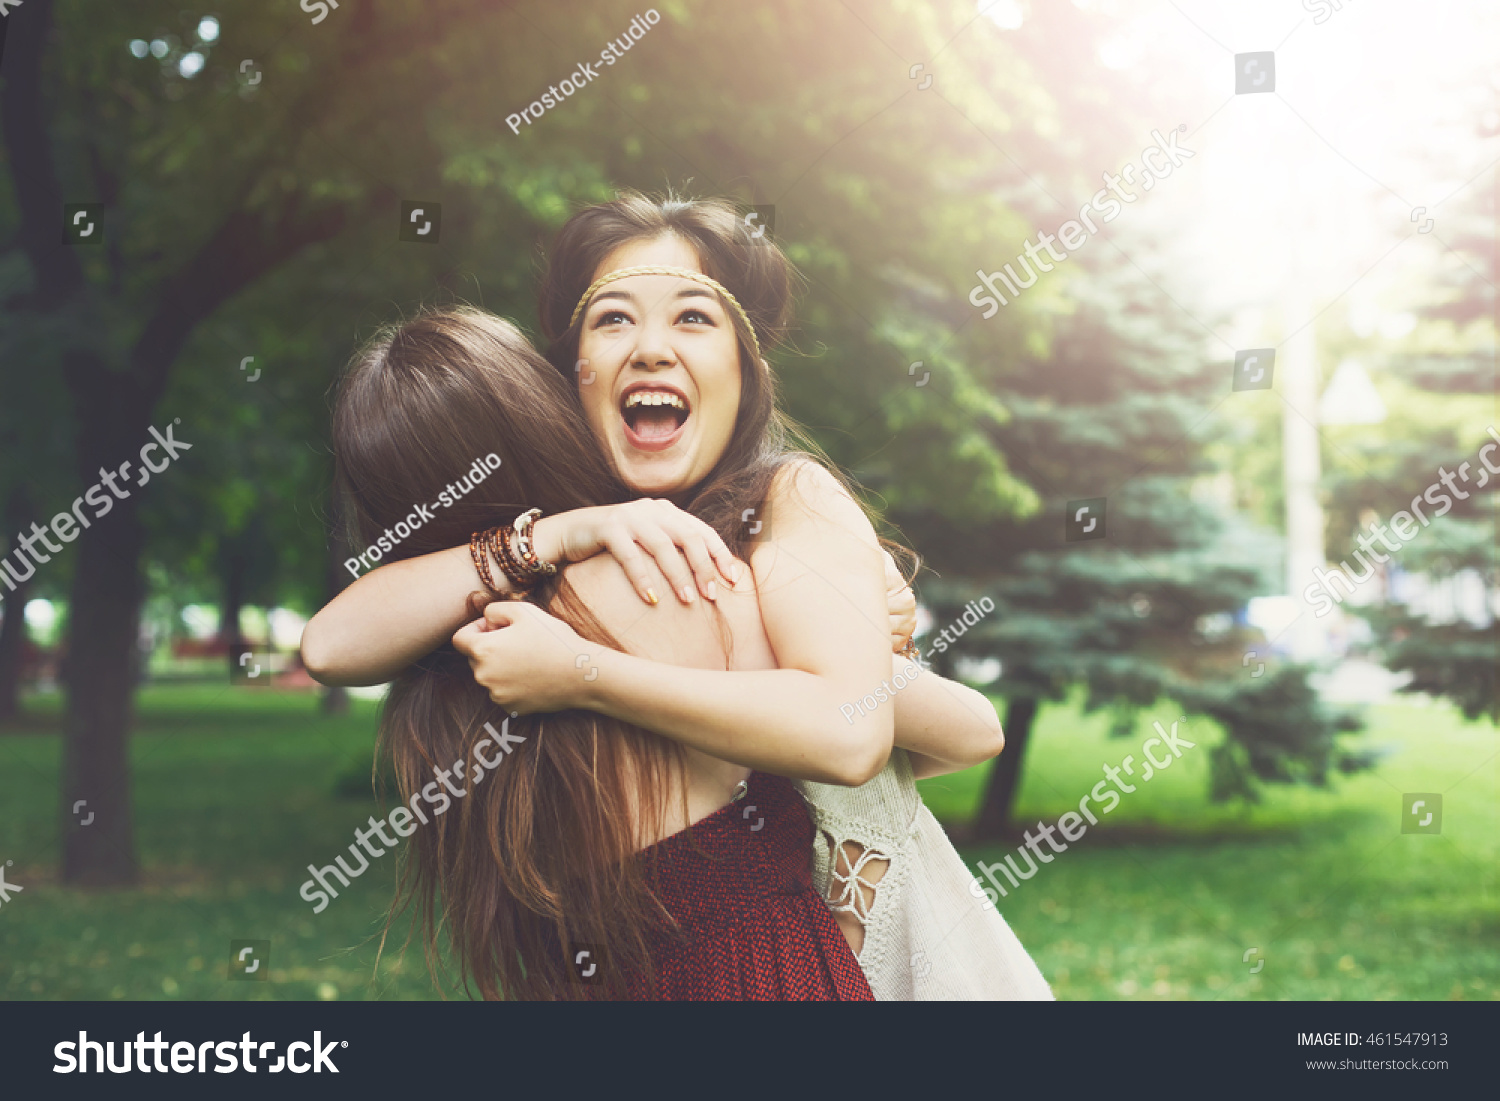 Two happy young girls hug each other Females embracing laughing and excited Woman friendship walk in the park outdoors Asian boho girl with friend